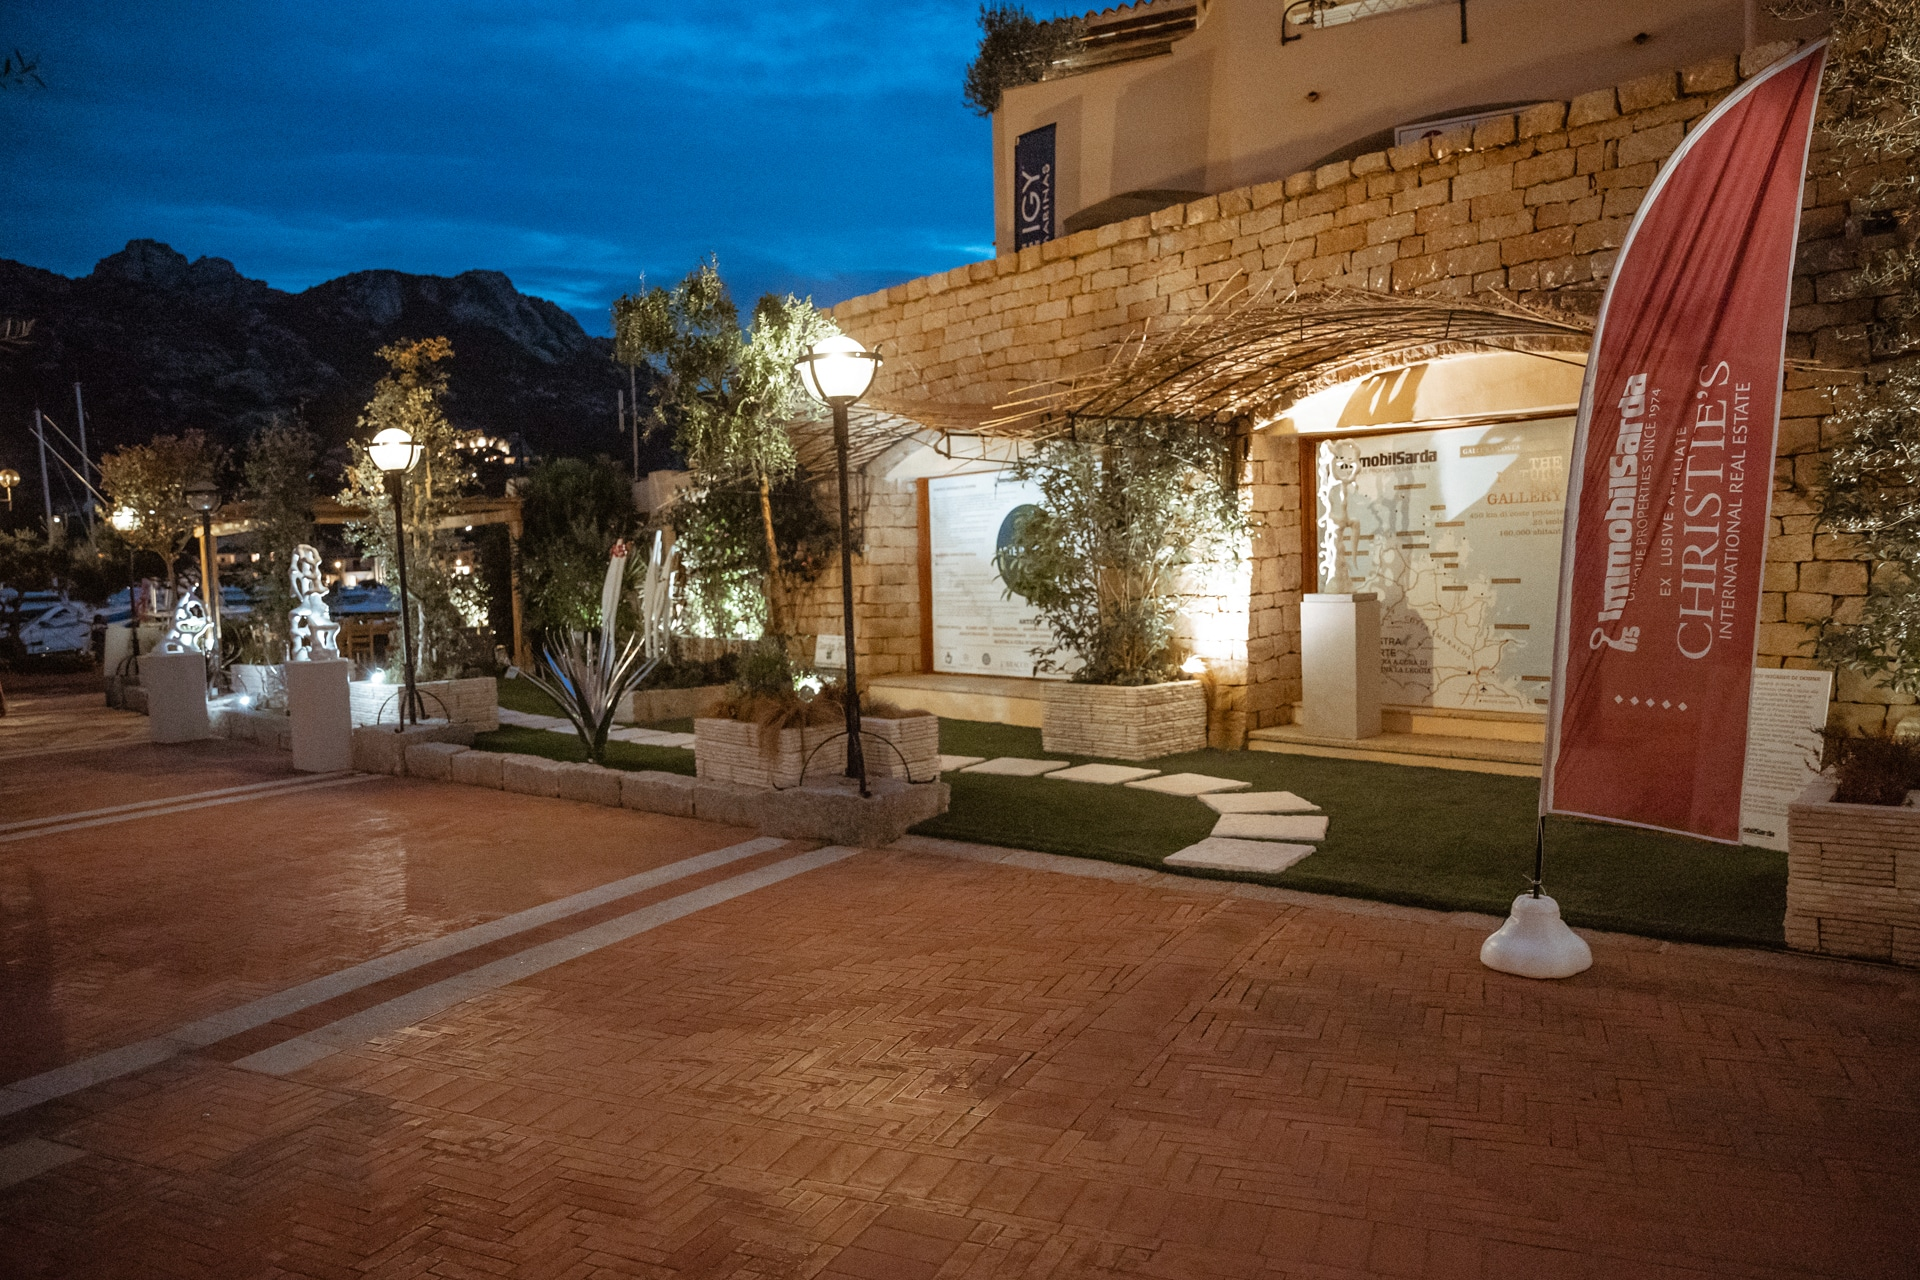 "ARTE IN… PORTO CERVO MARINA: VERNISSAGE DI SUCCESSO TARGATO ""THE NATURE ART GALLERY"" PER IMMOBILSARDA"